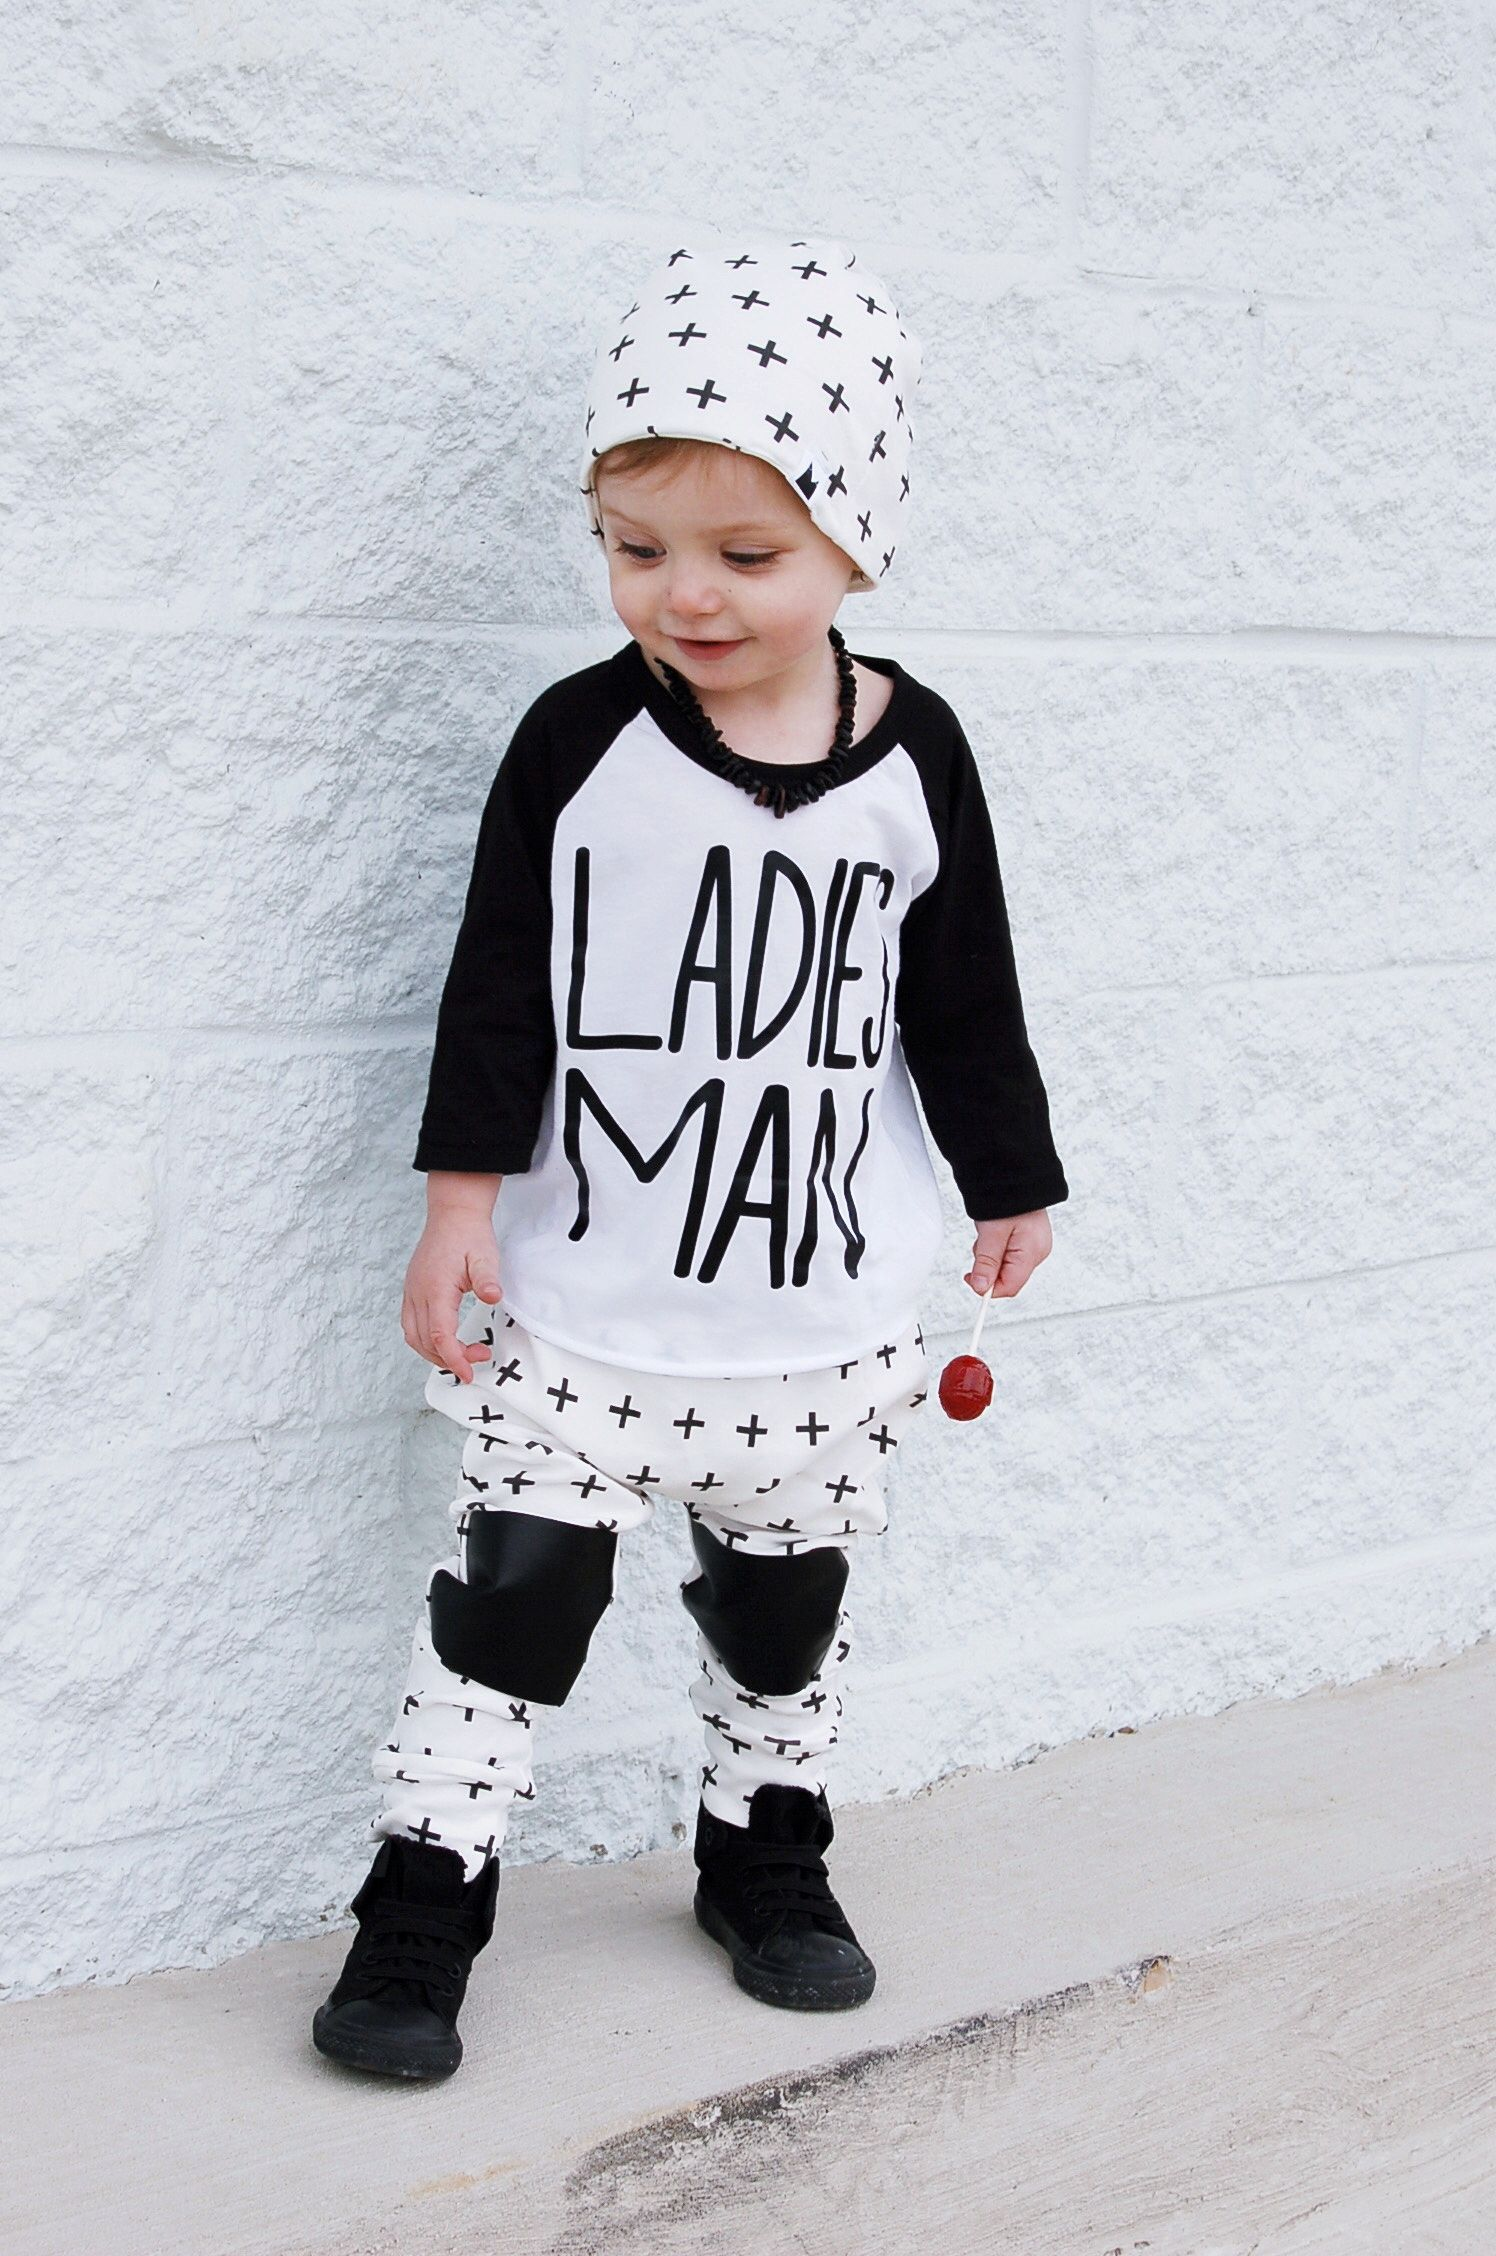 Baby hipster clothes boy photo